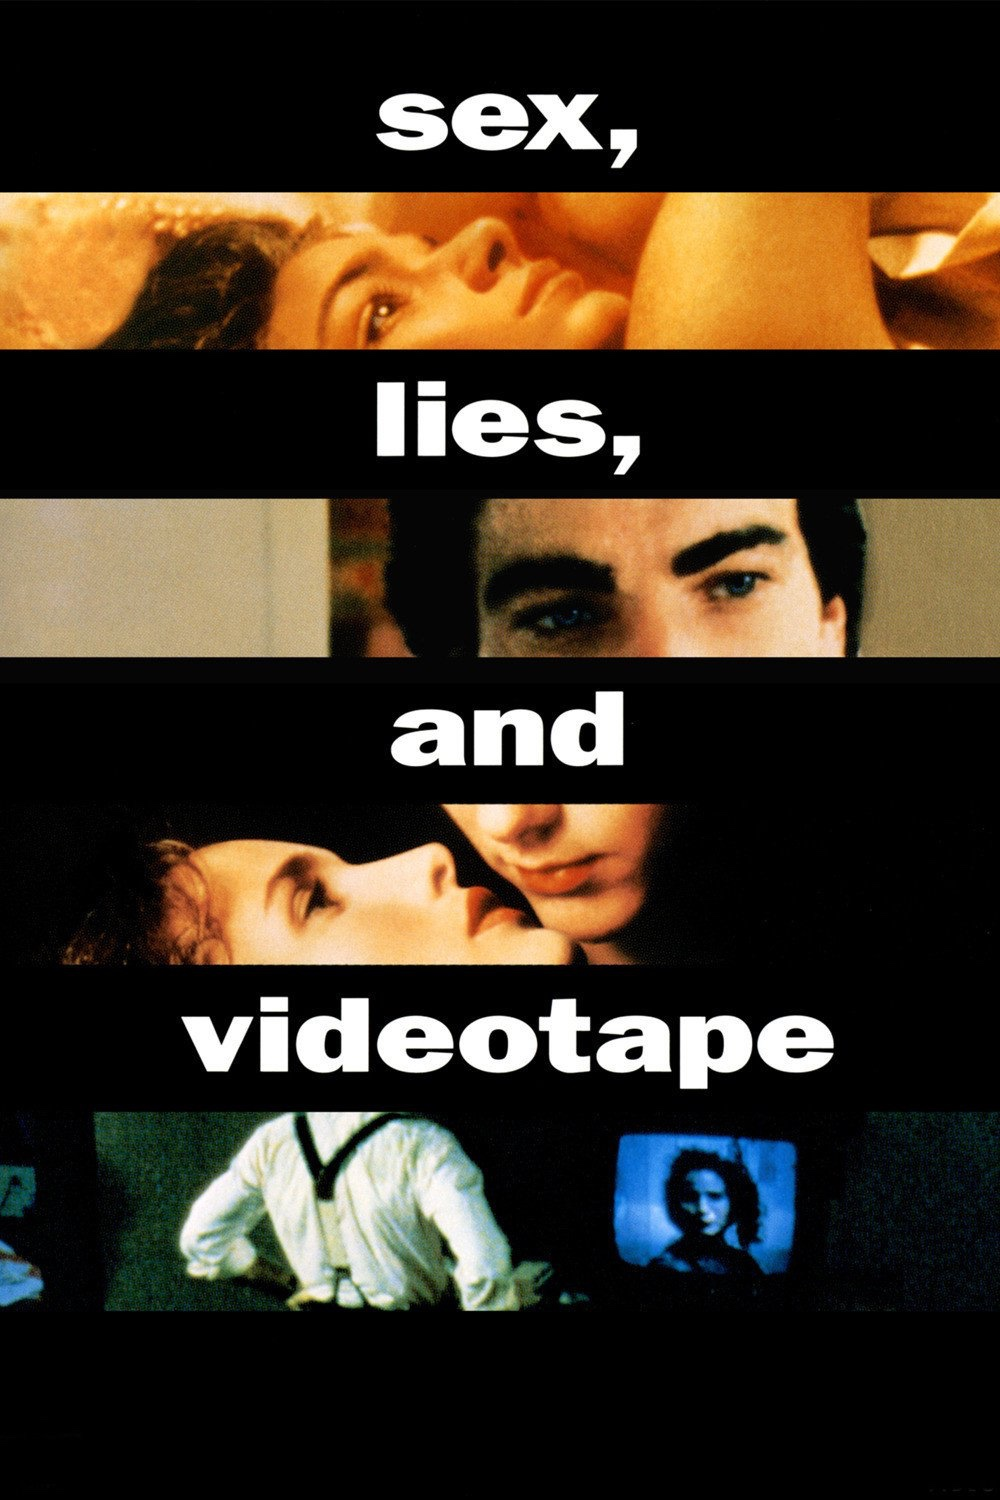 The movie poster of sex, lies and videotape, showing images of the cast intercut with thick black lines